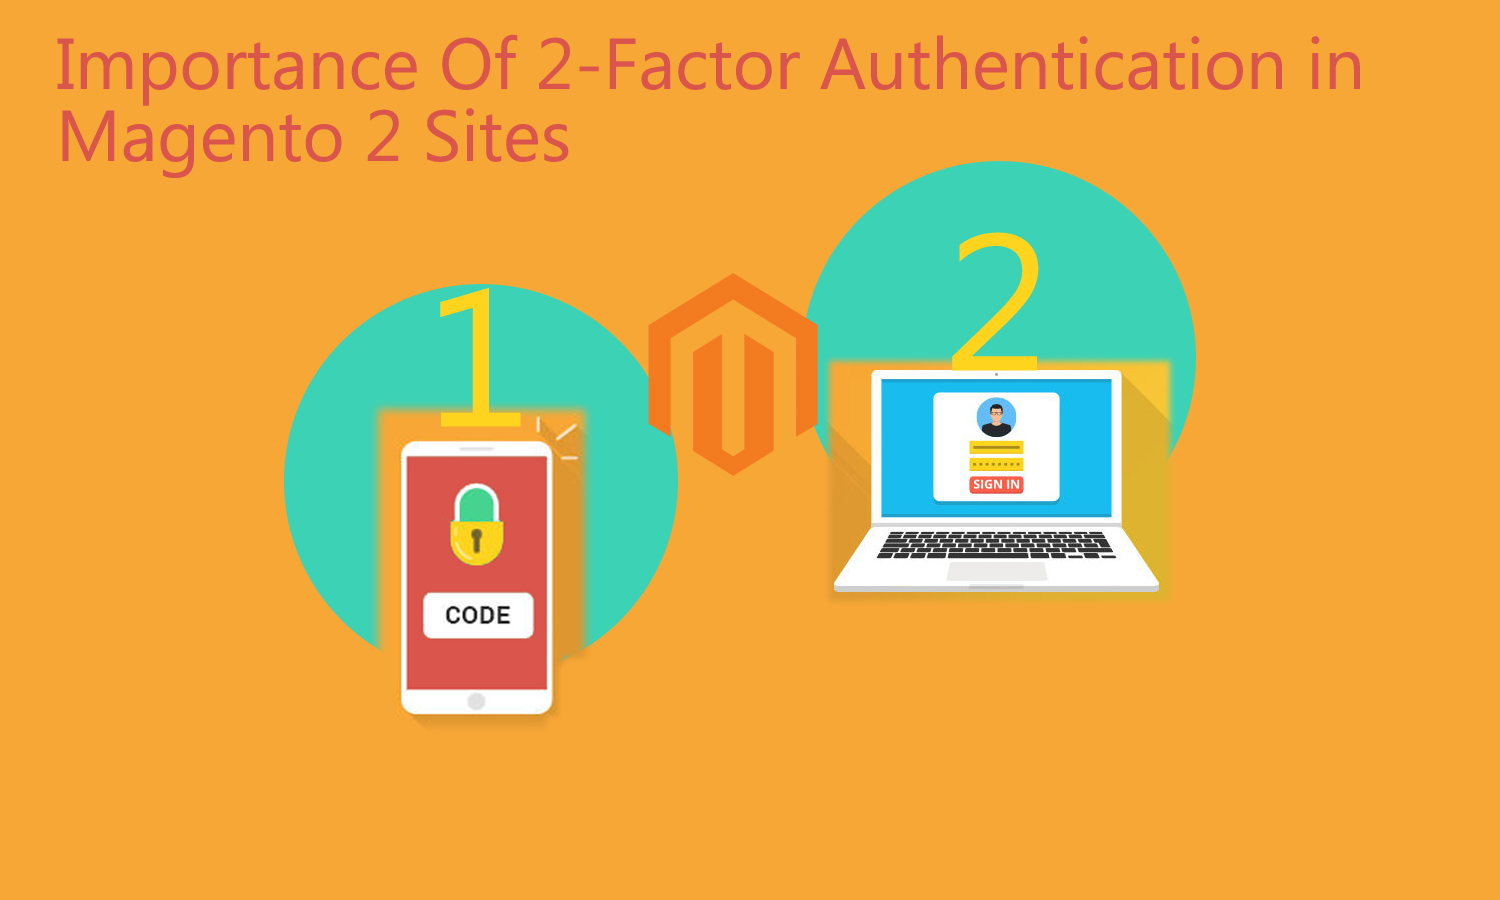 What Is The Importance Of 2-Factor Authentication For Magento 2 Sites?